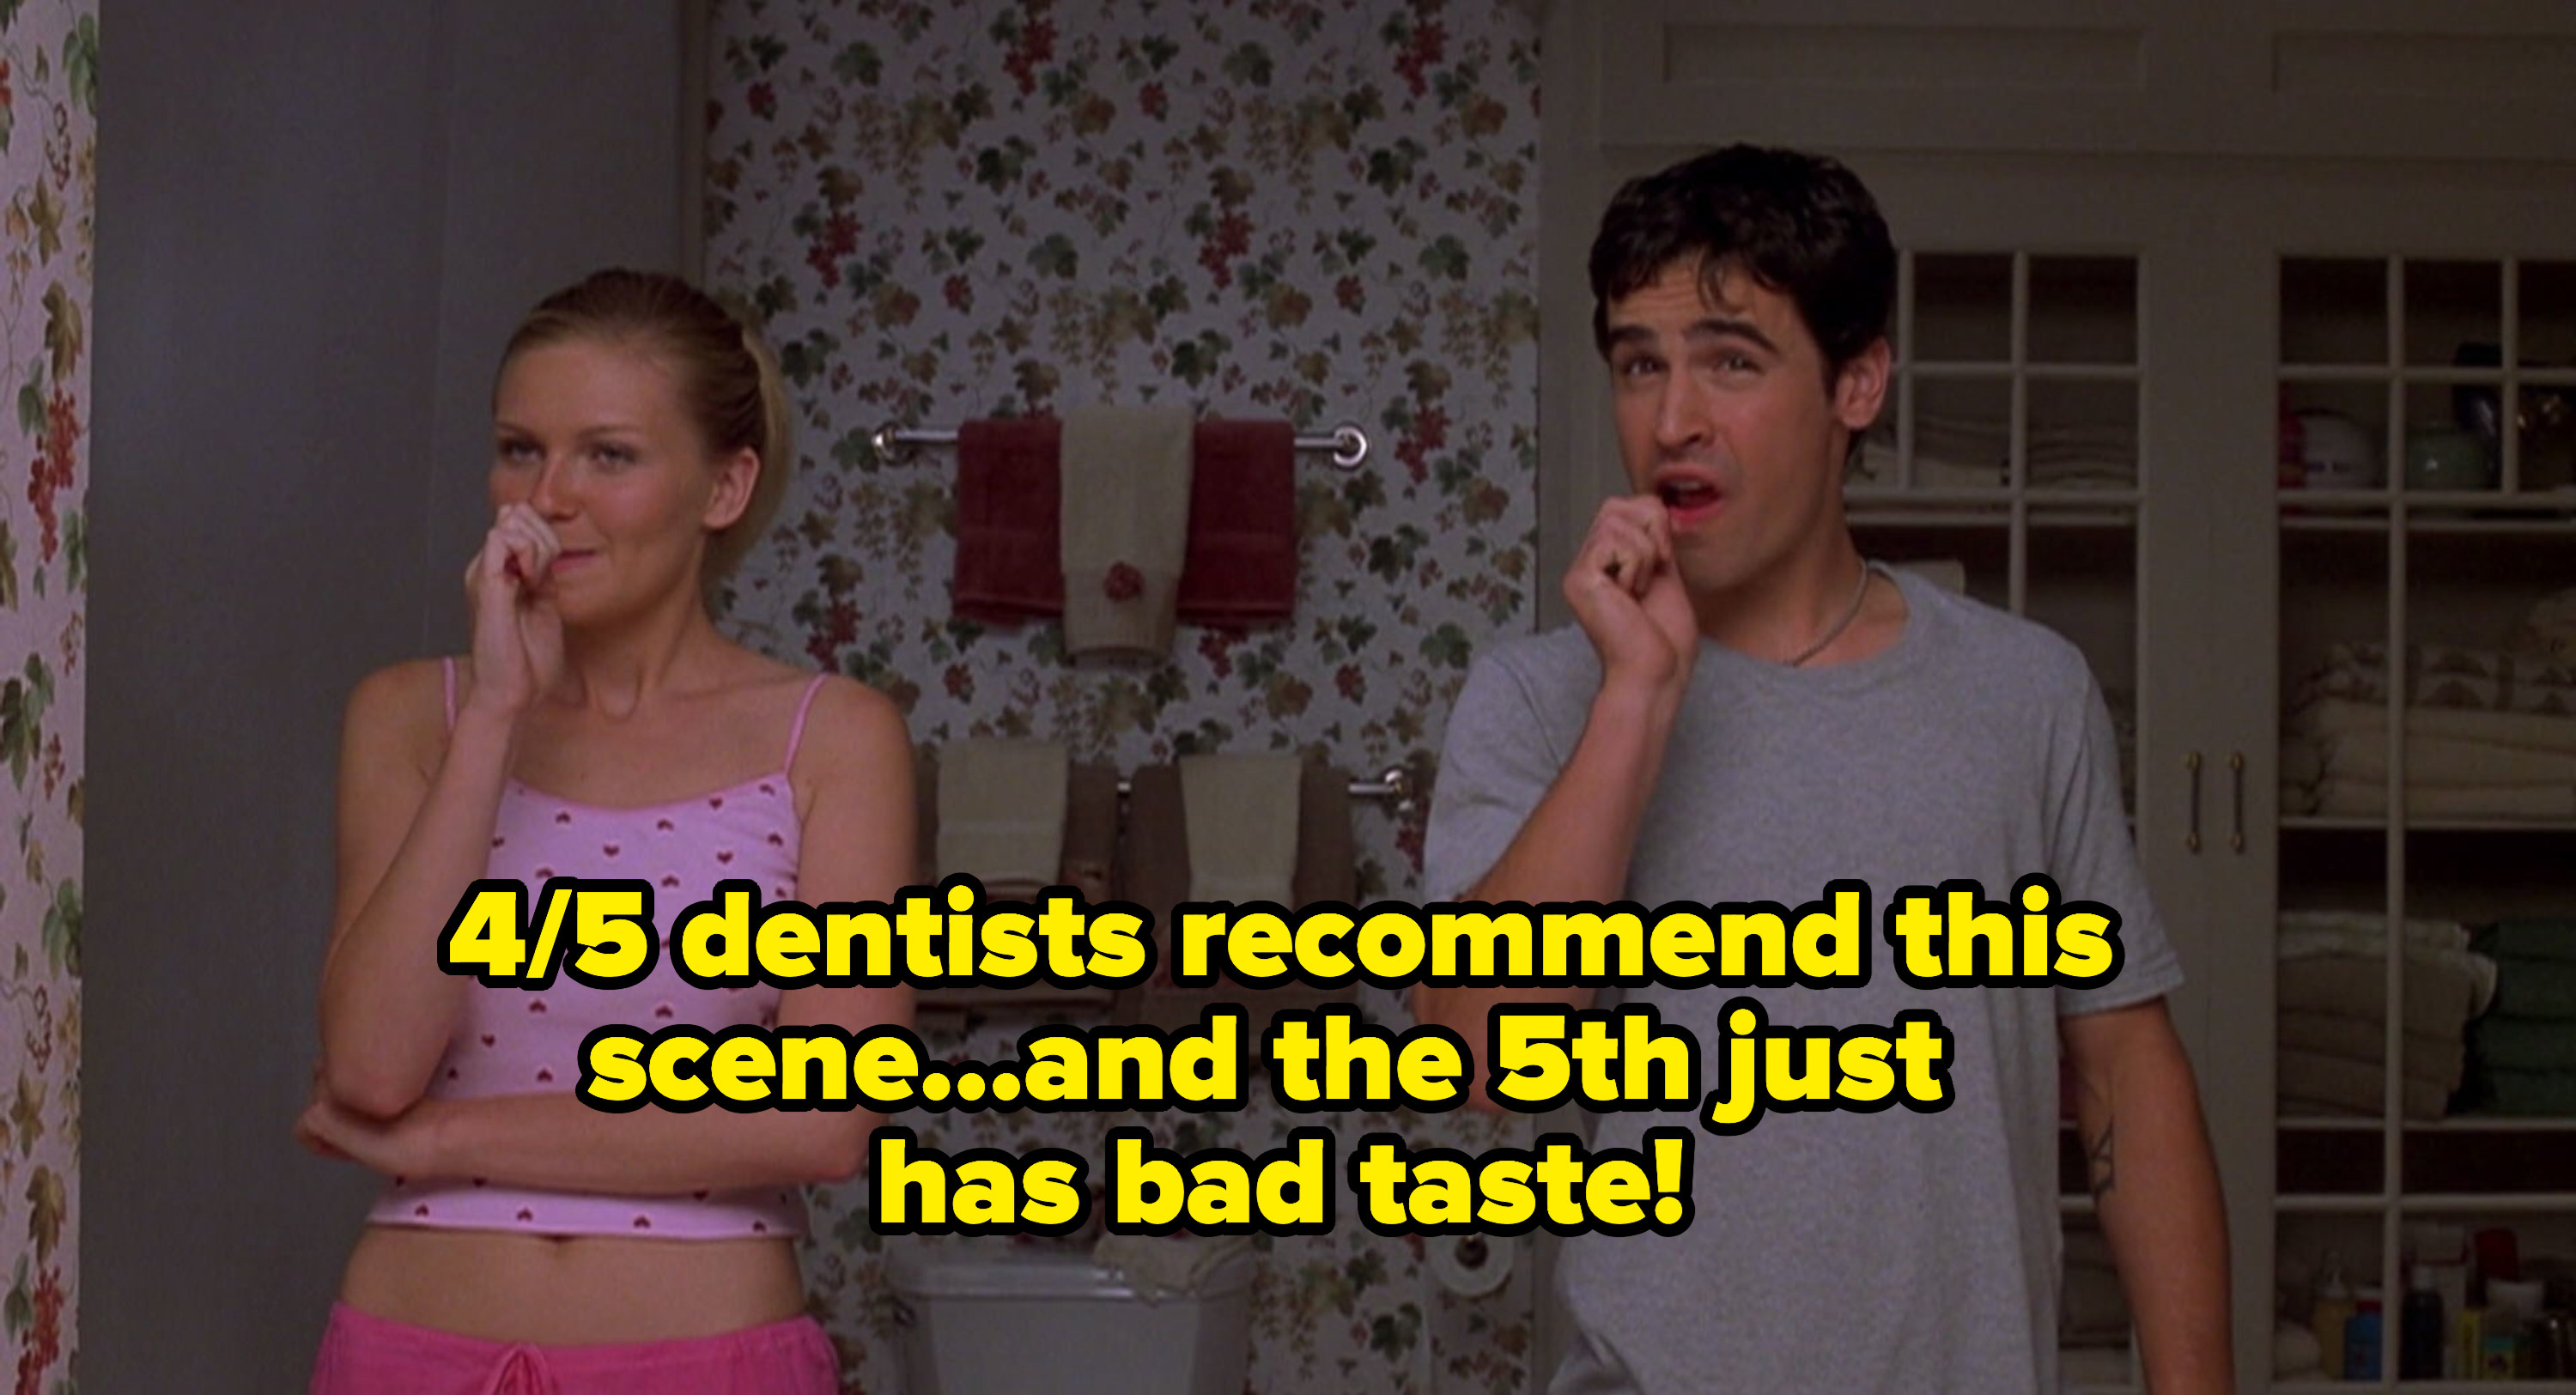 """Author's caption: """"4/5 dentists recommend this scene...and the 5th just has bad taste!"""""""